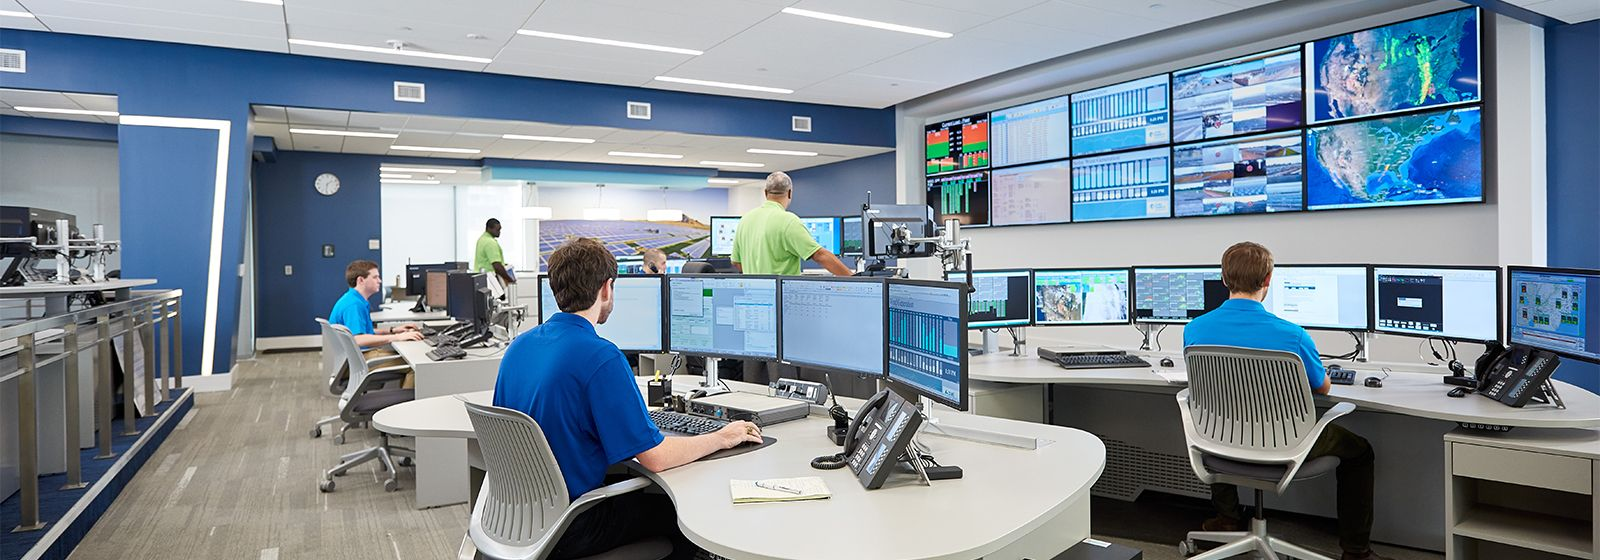 High-tech control center helps grow renewable energy